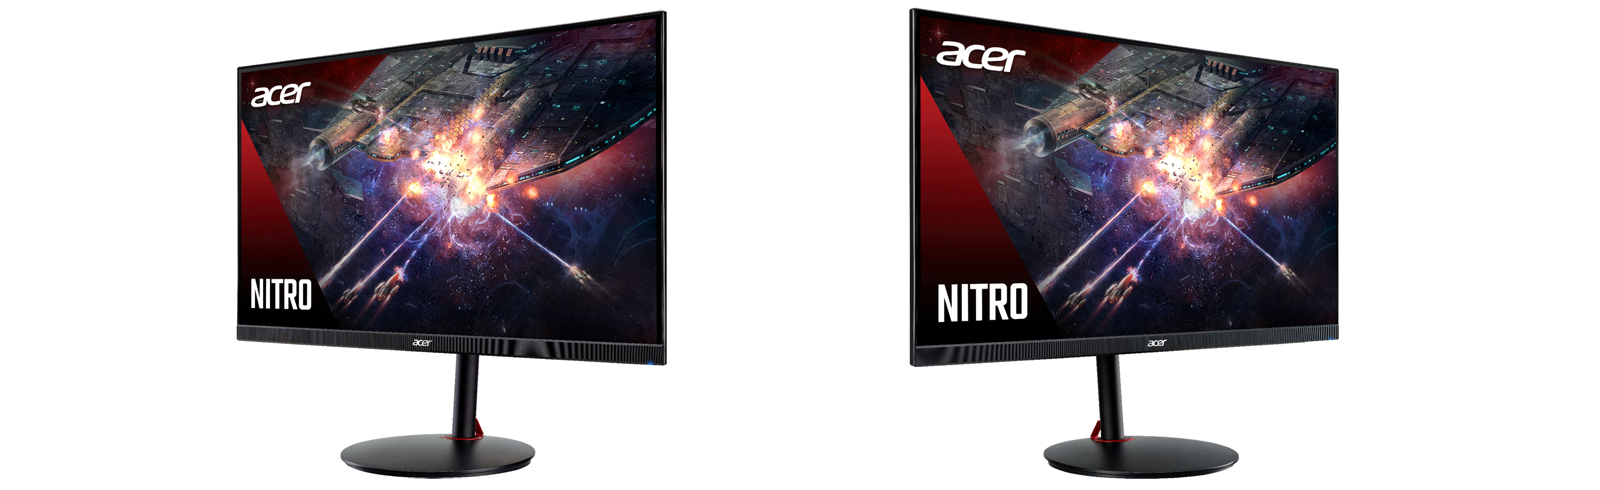 """The Acer XV271 Zbmiiprx tempts with a 280Hz, 27"""" FHD IPS display, costs USD 400"""